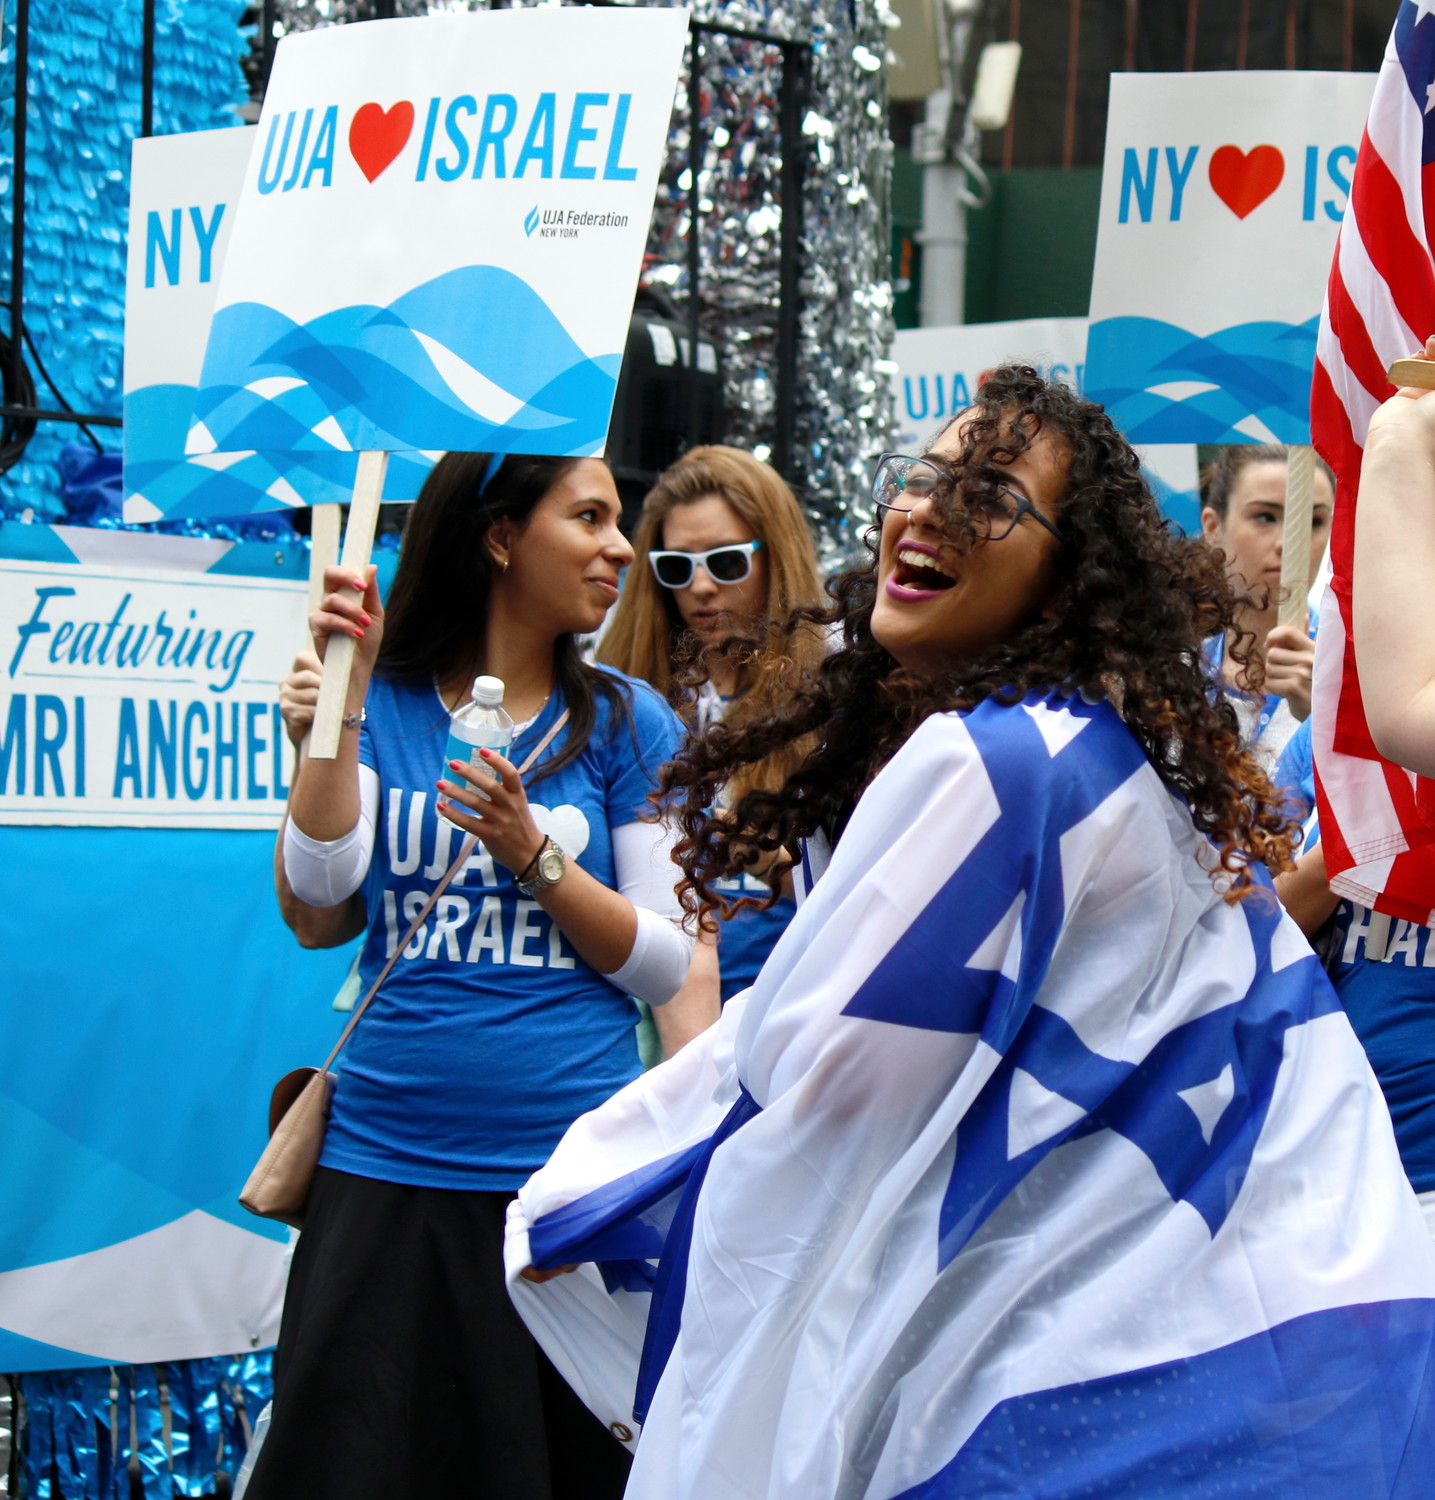 Flags fly as NY celebrates Israel: Marcher from UJA Federation New York shows her blue-and-white.